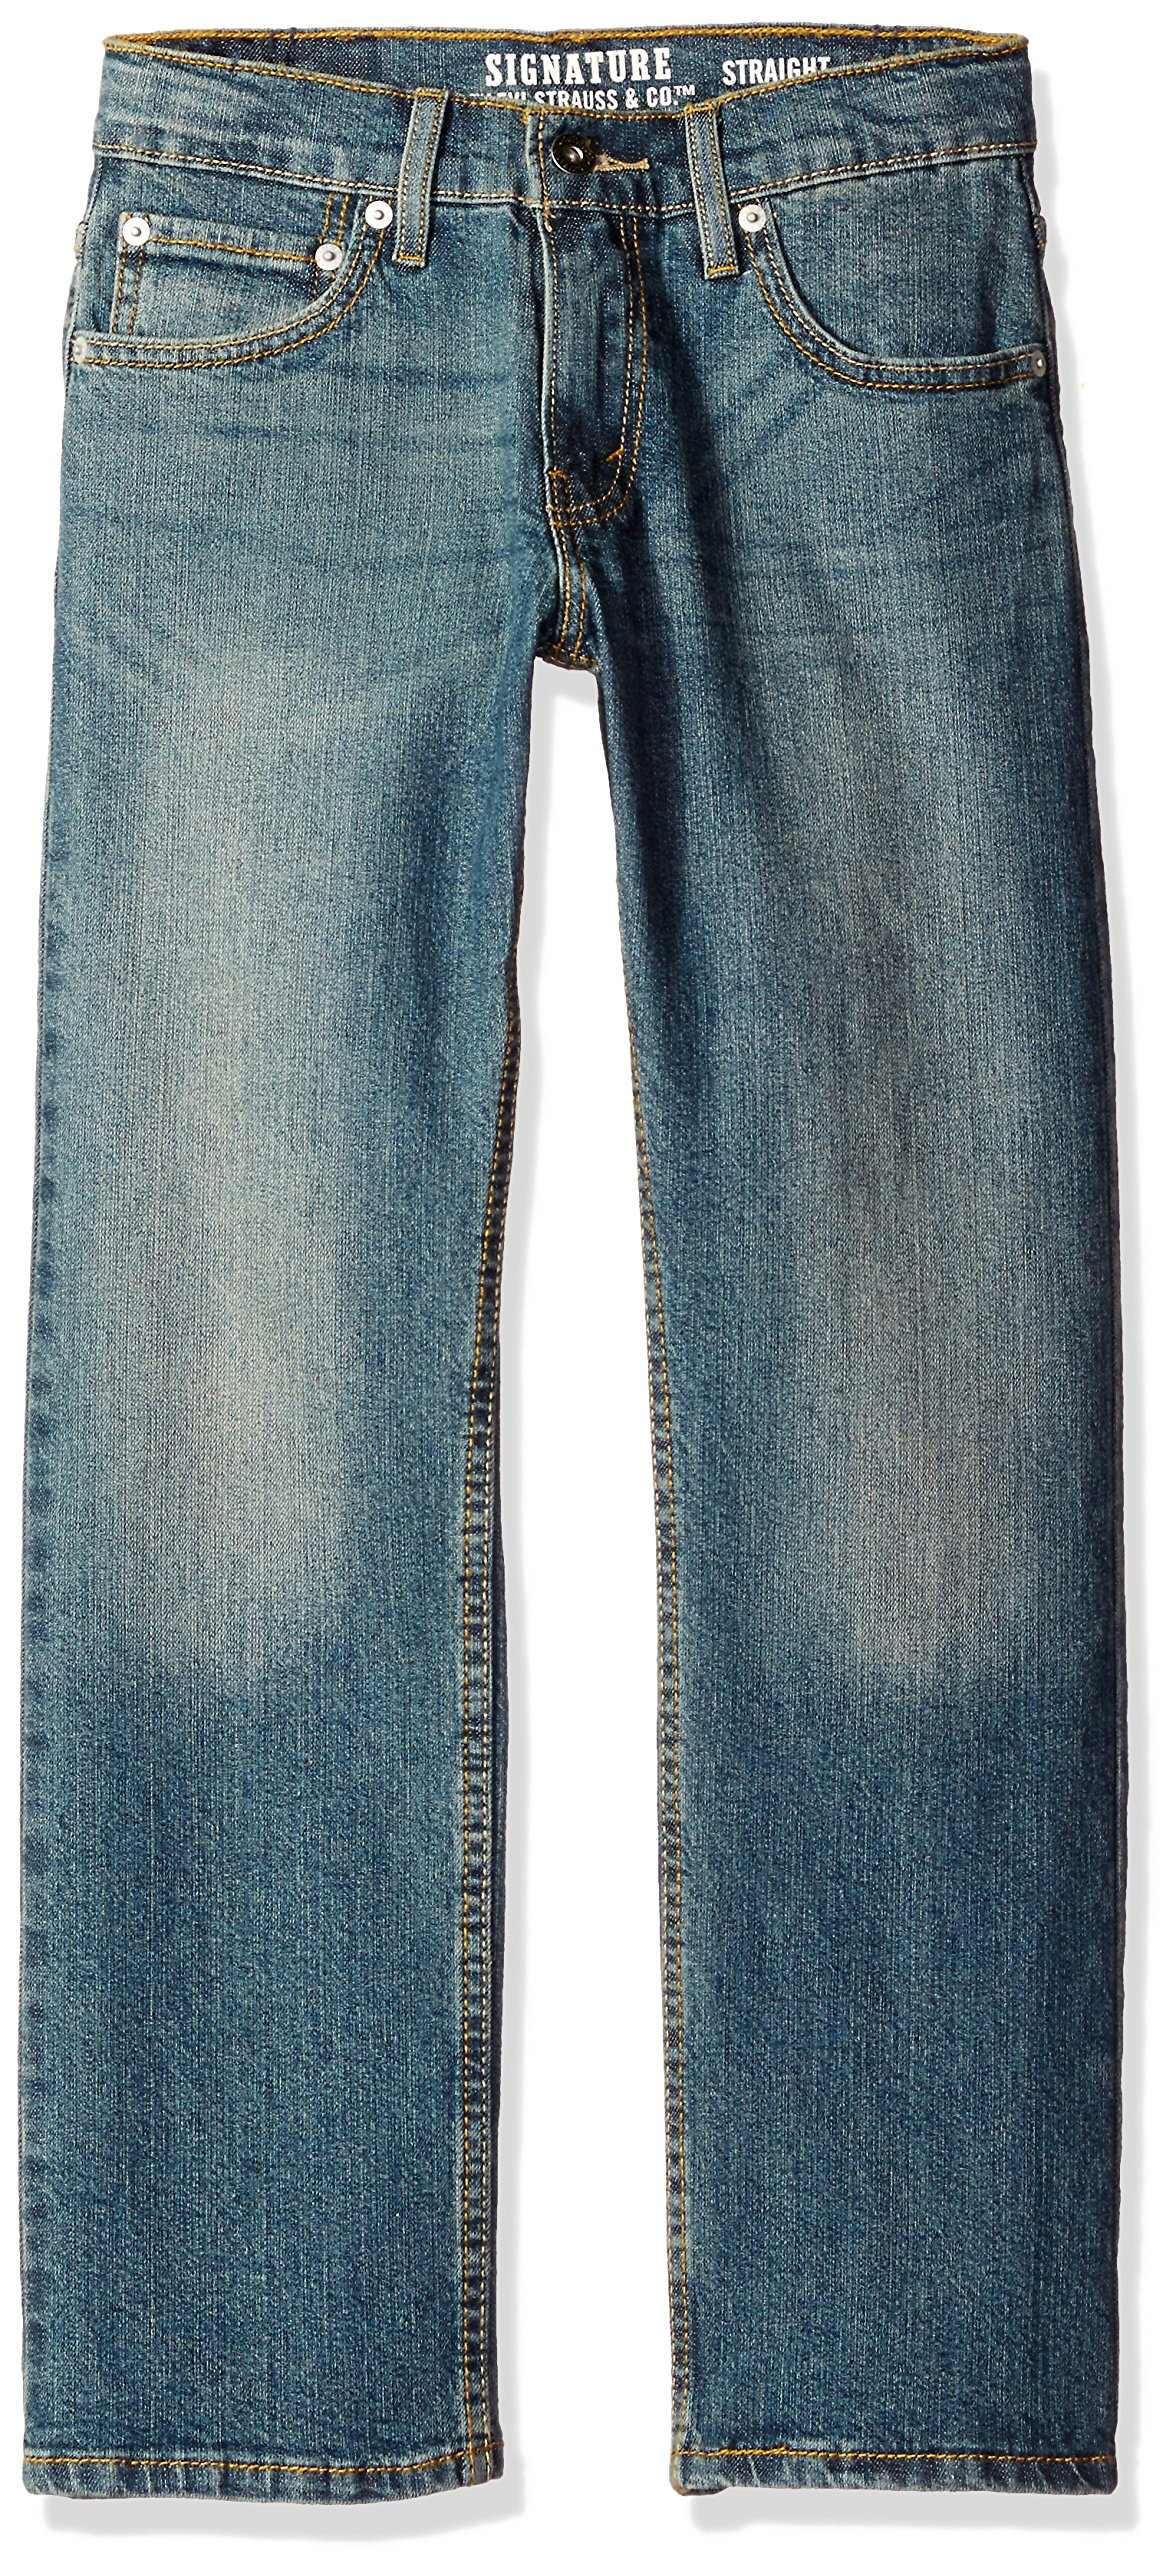 Signature by Levi Strauss & Co. Gold Label Big Boys' Straight Fit Jeans, Indy, 12